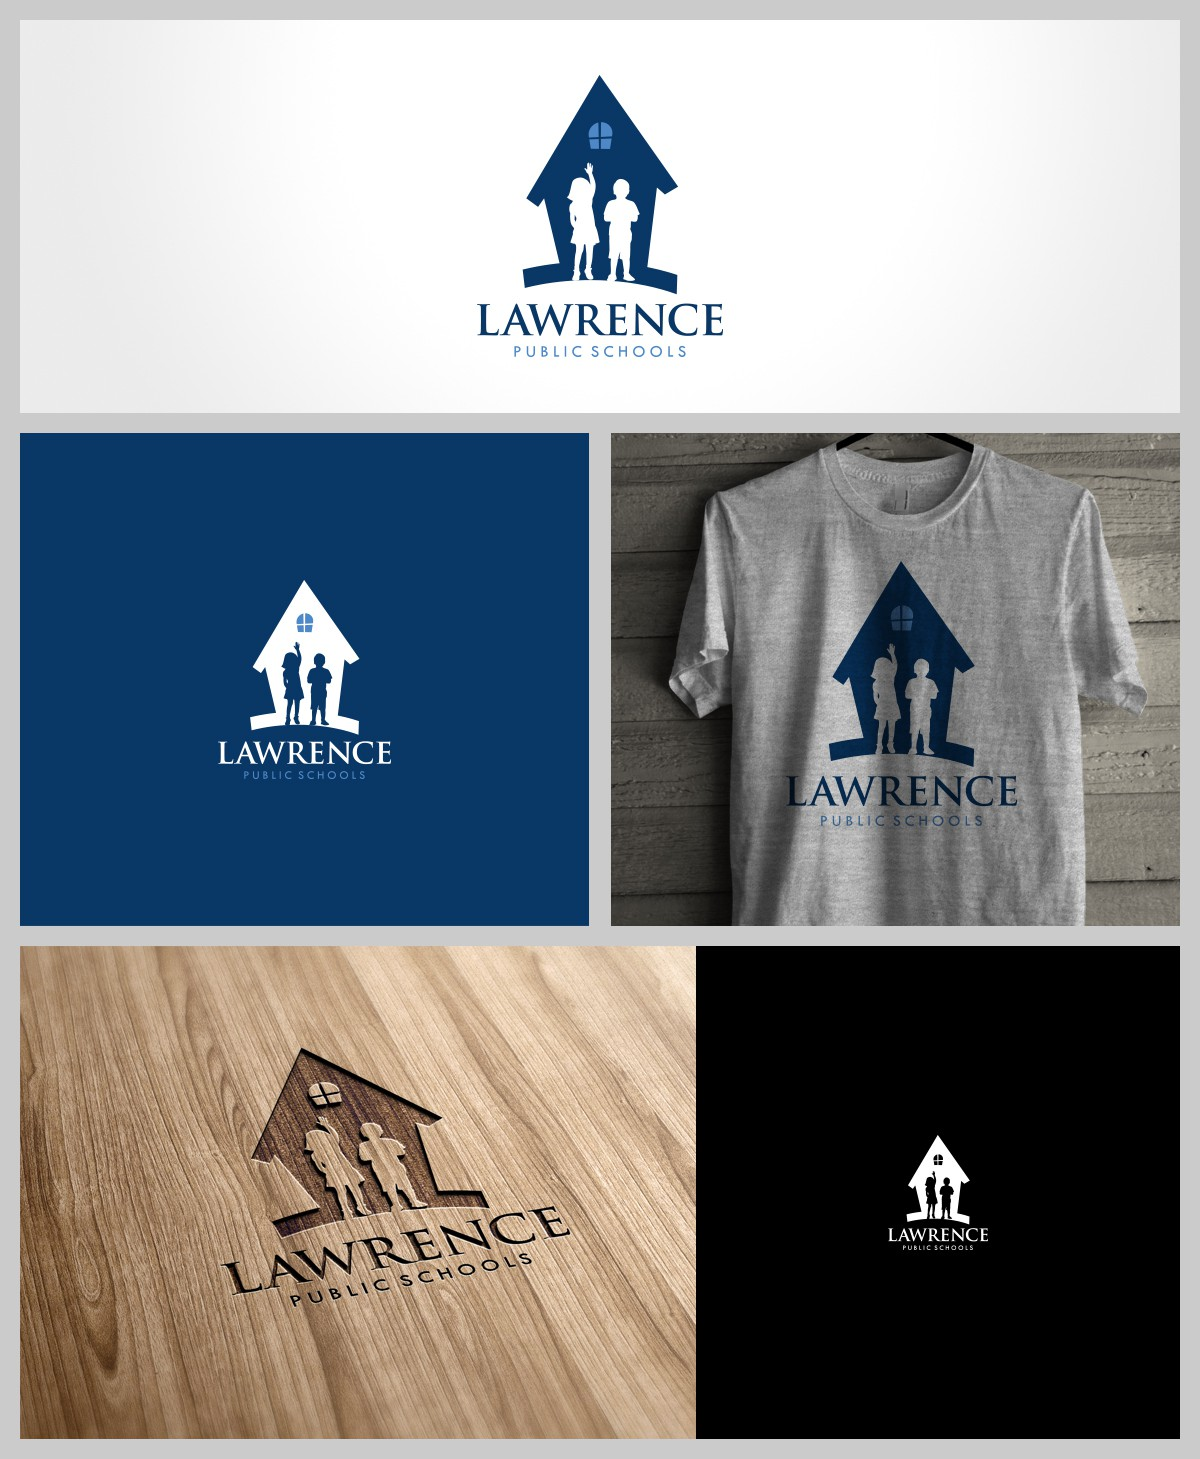 Lawrence Public Schools needs a new logo